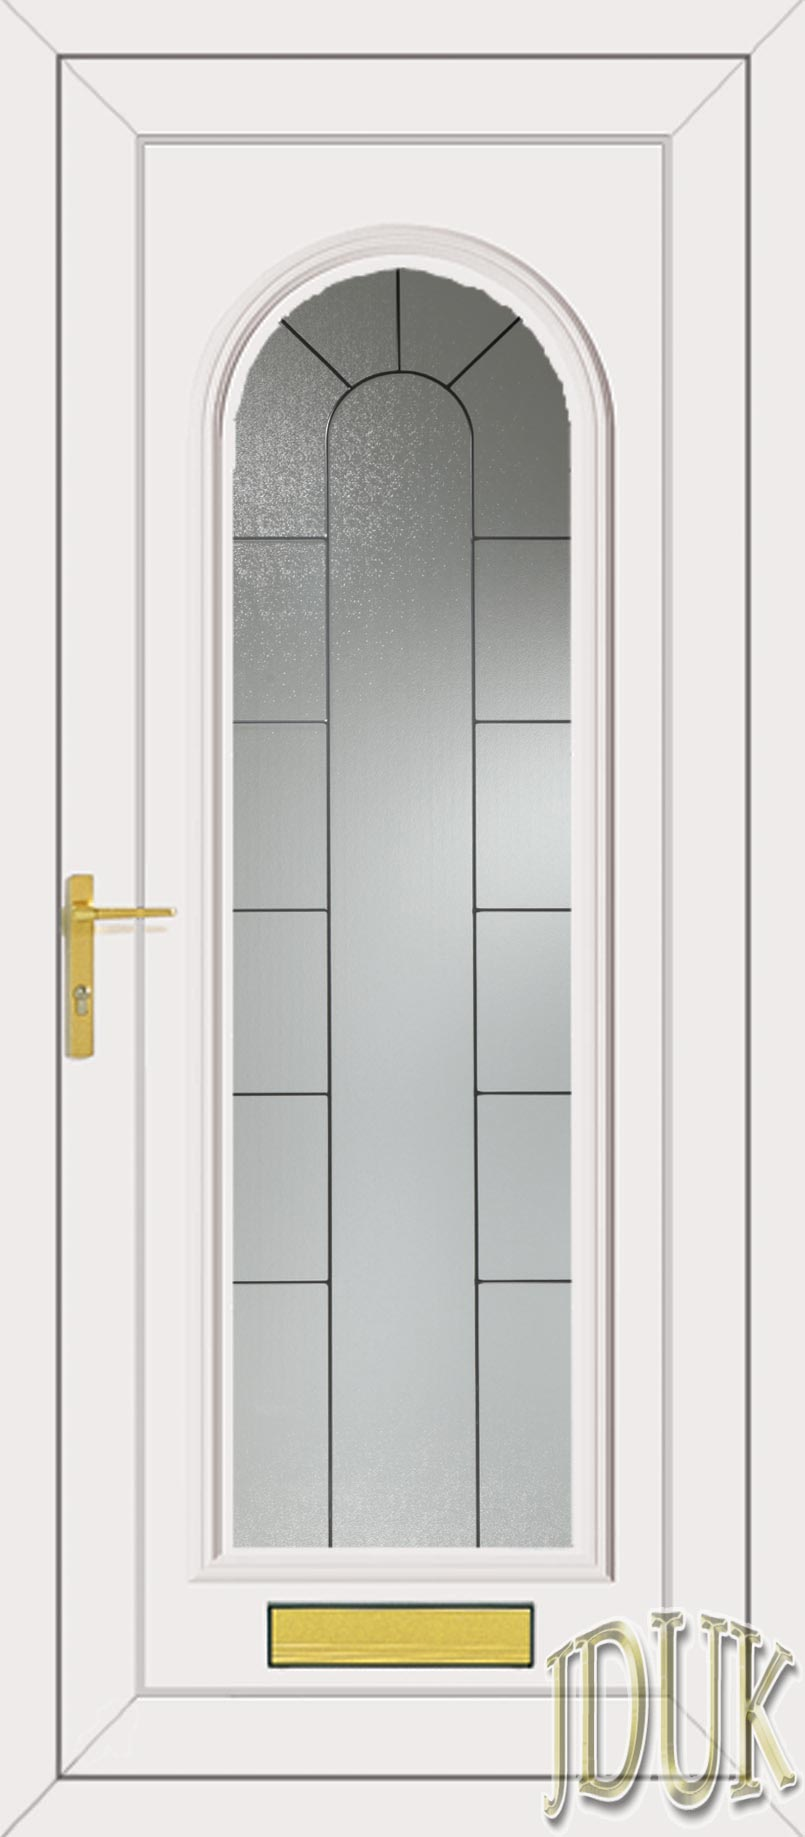 Standard specification for Upvc front doors